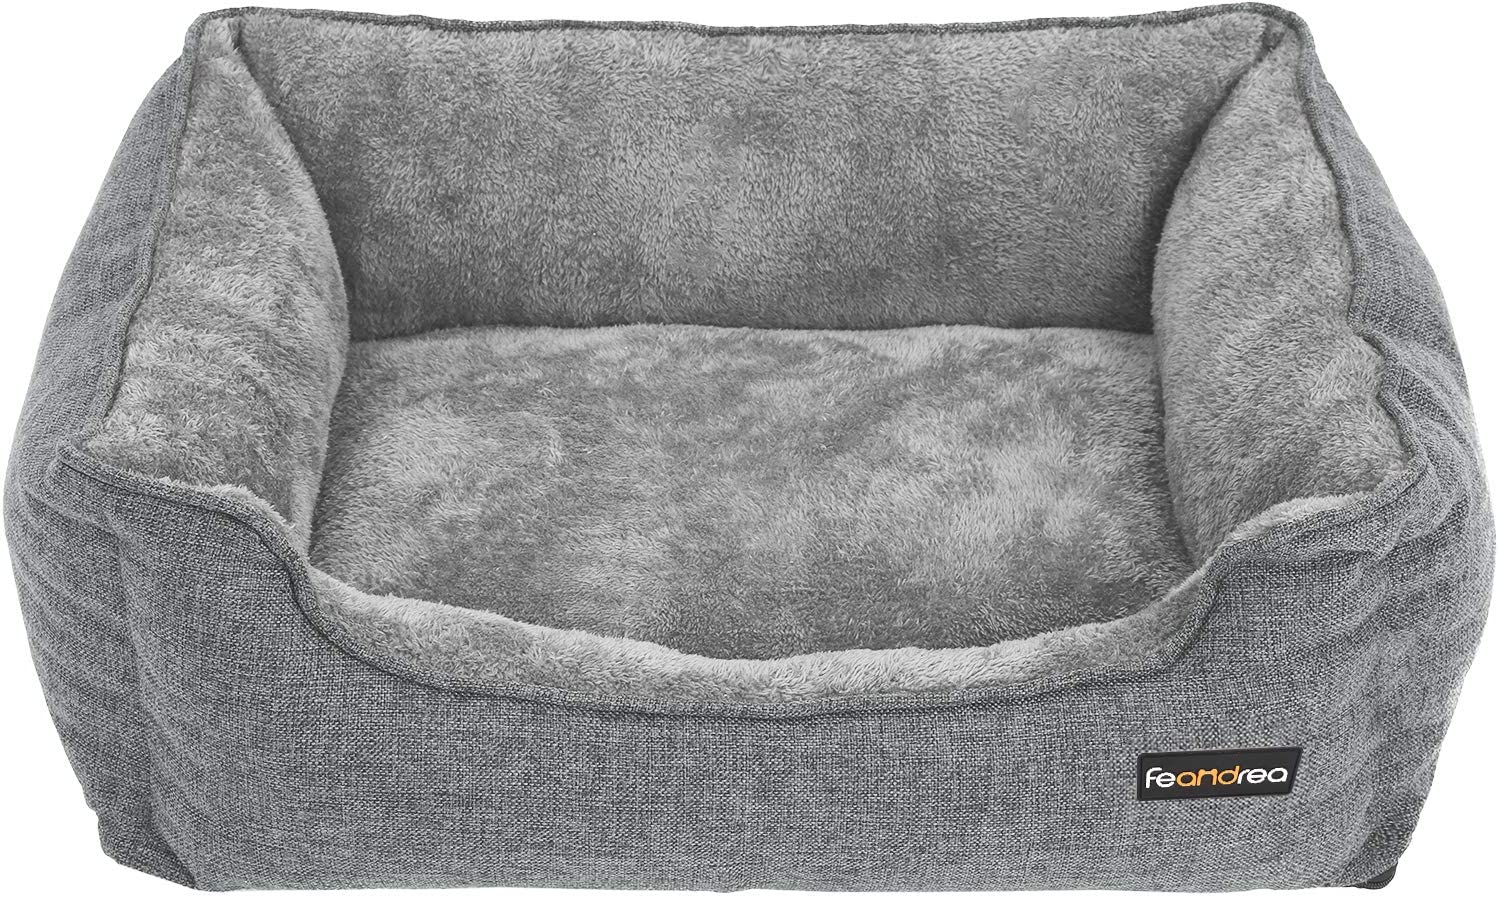 Made in France Large Size Washable Dog Bed 110 x 60